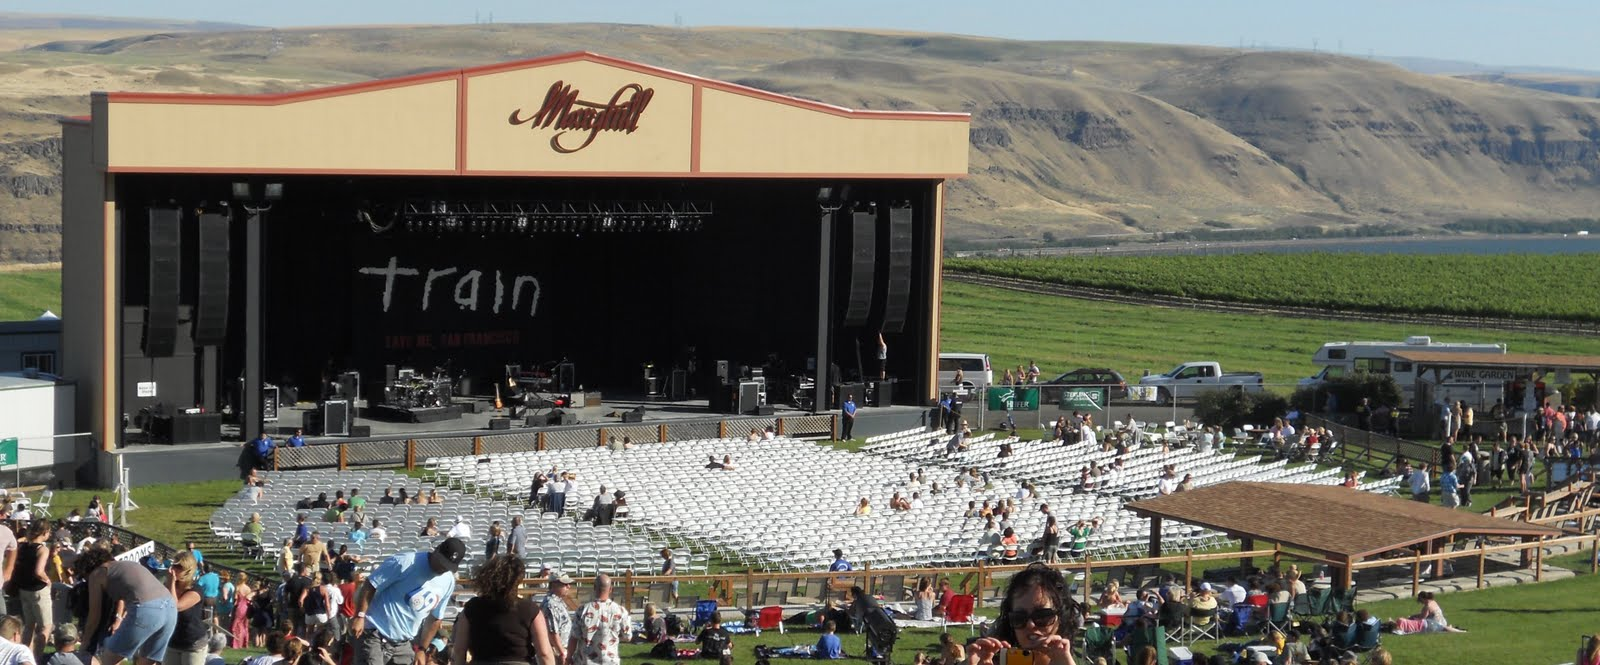 Goldendale Ampitheater - Venue Information | Maryhill Winery